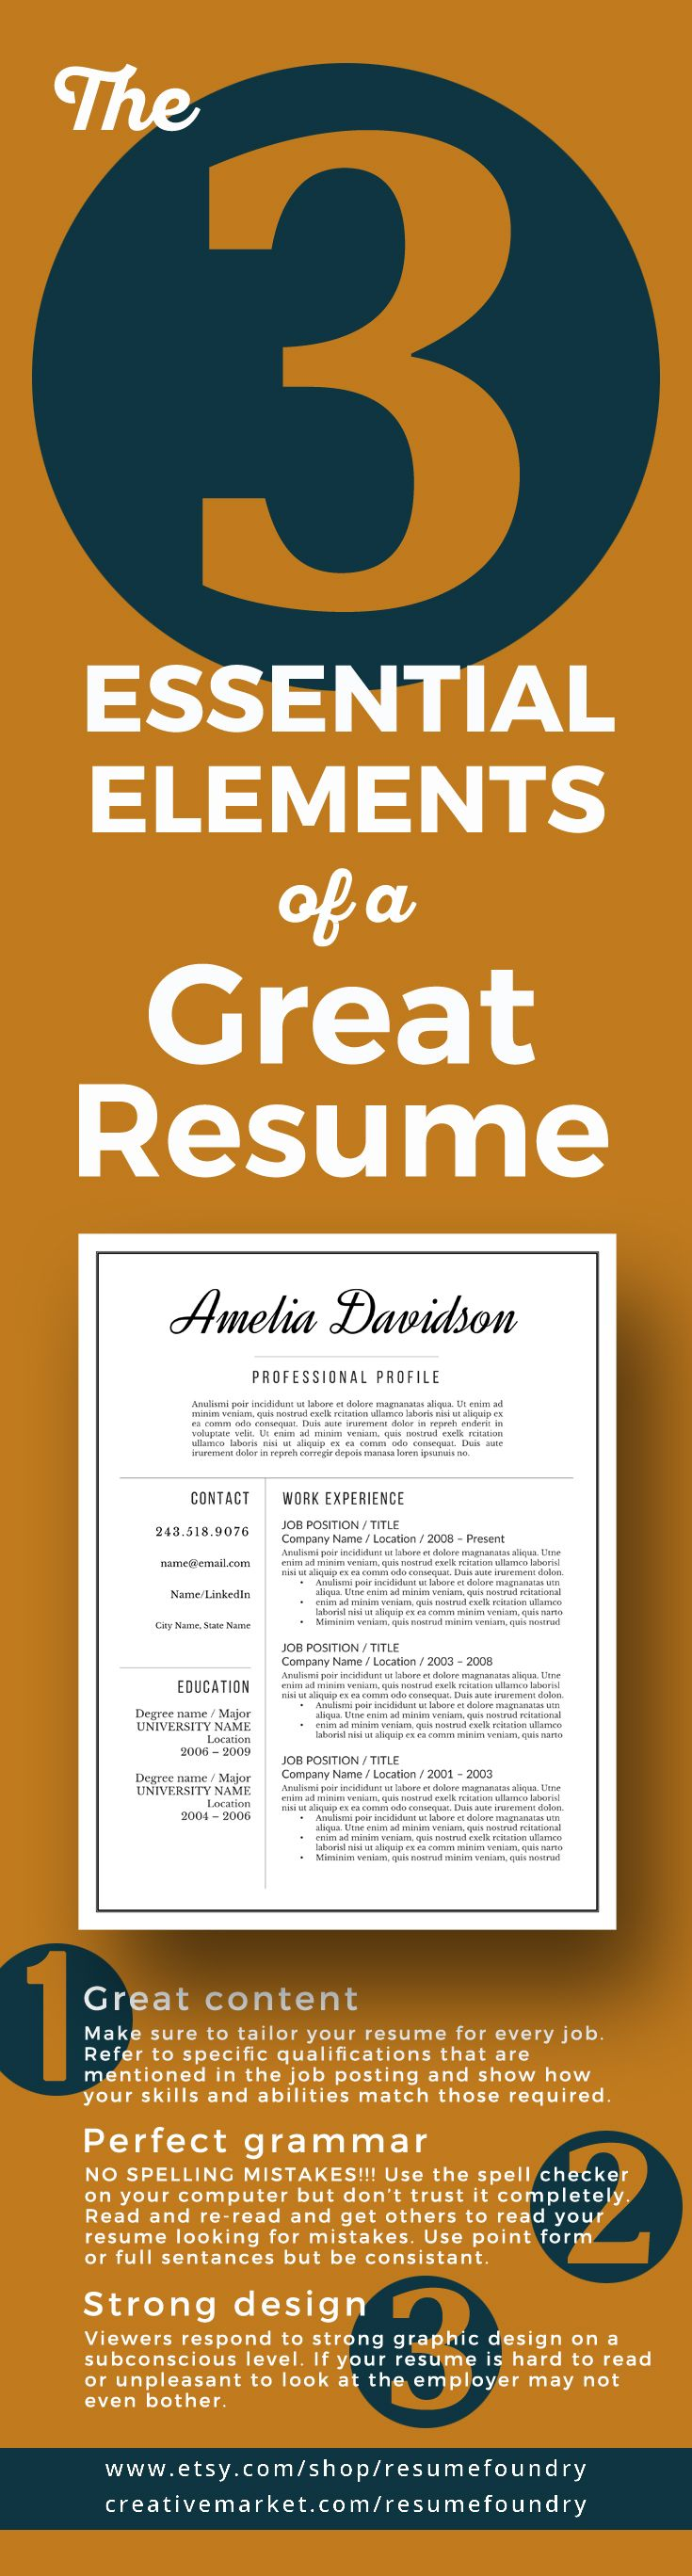 Resume Cover Letter Template 2018 126 Best Professional Resumes From Resume Foundry Images On